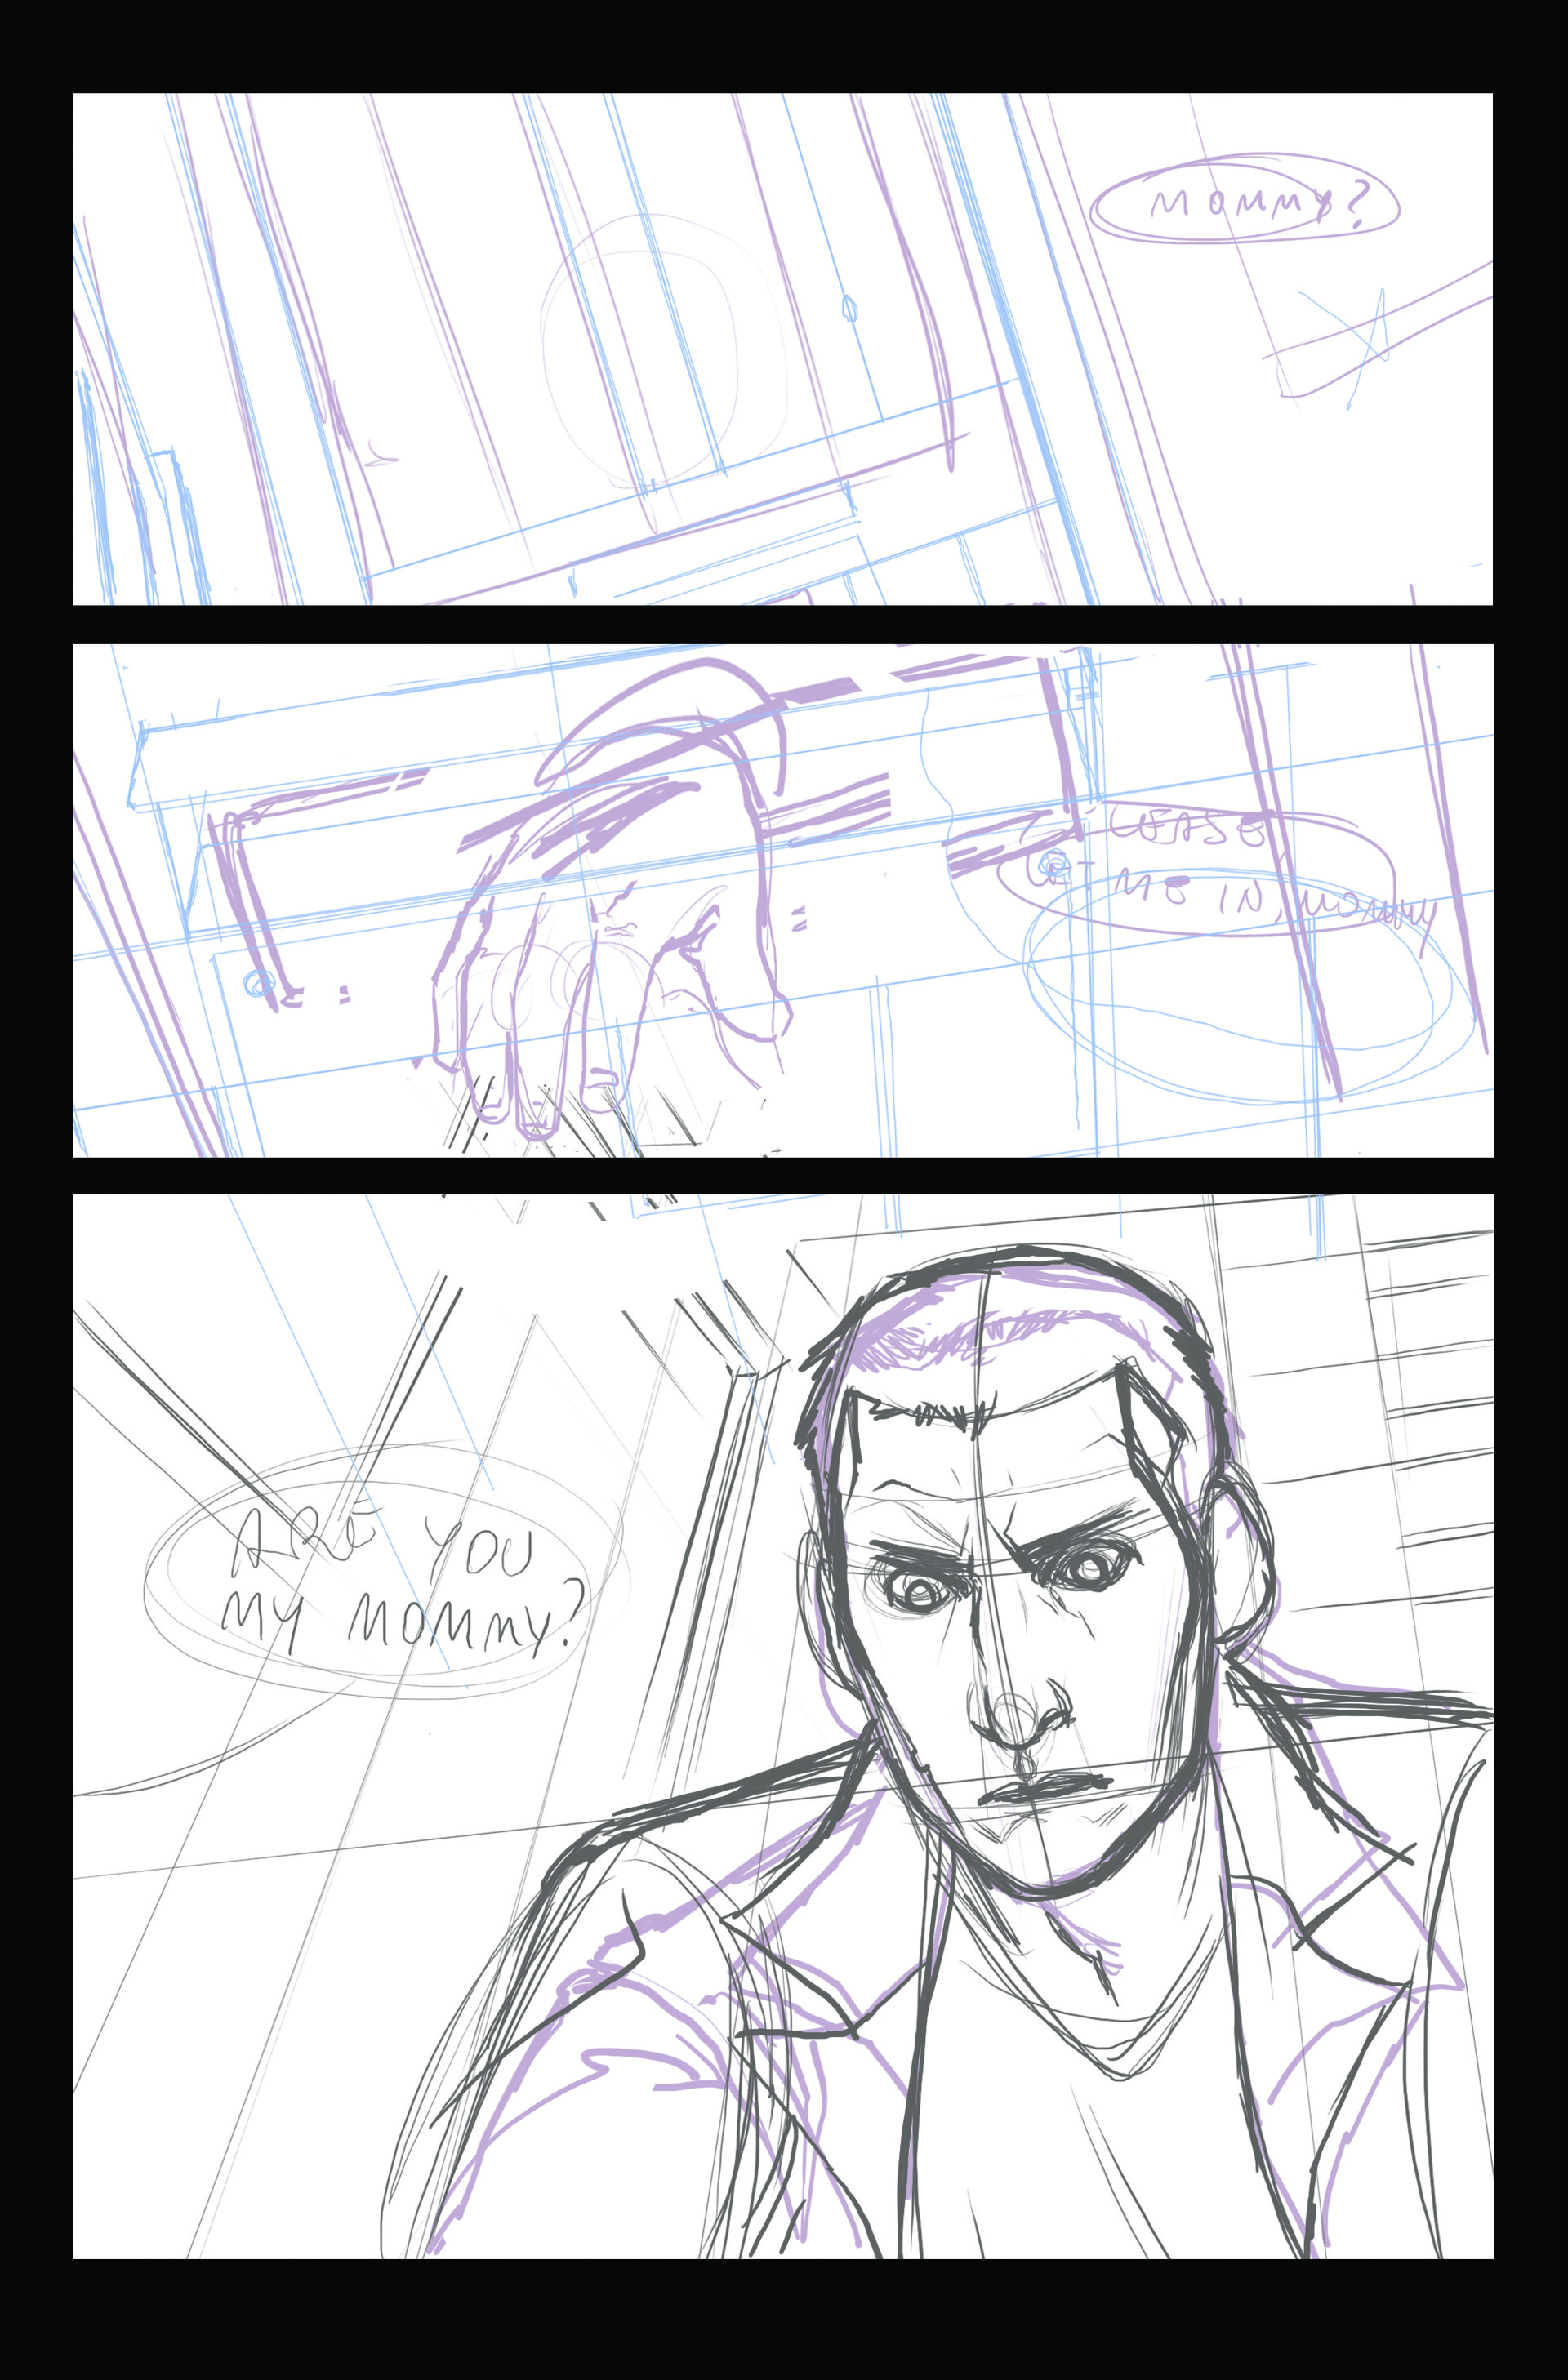 Claudia cocci doctor who page 04sketch